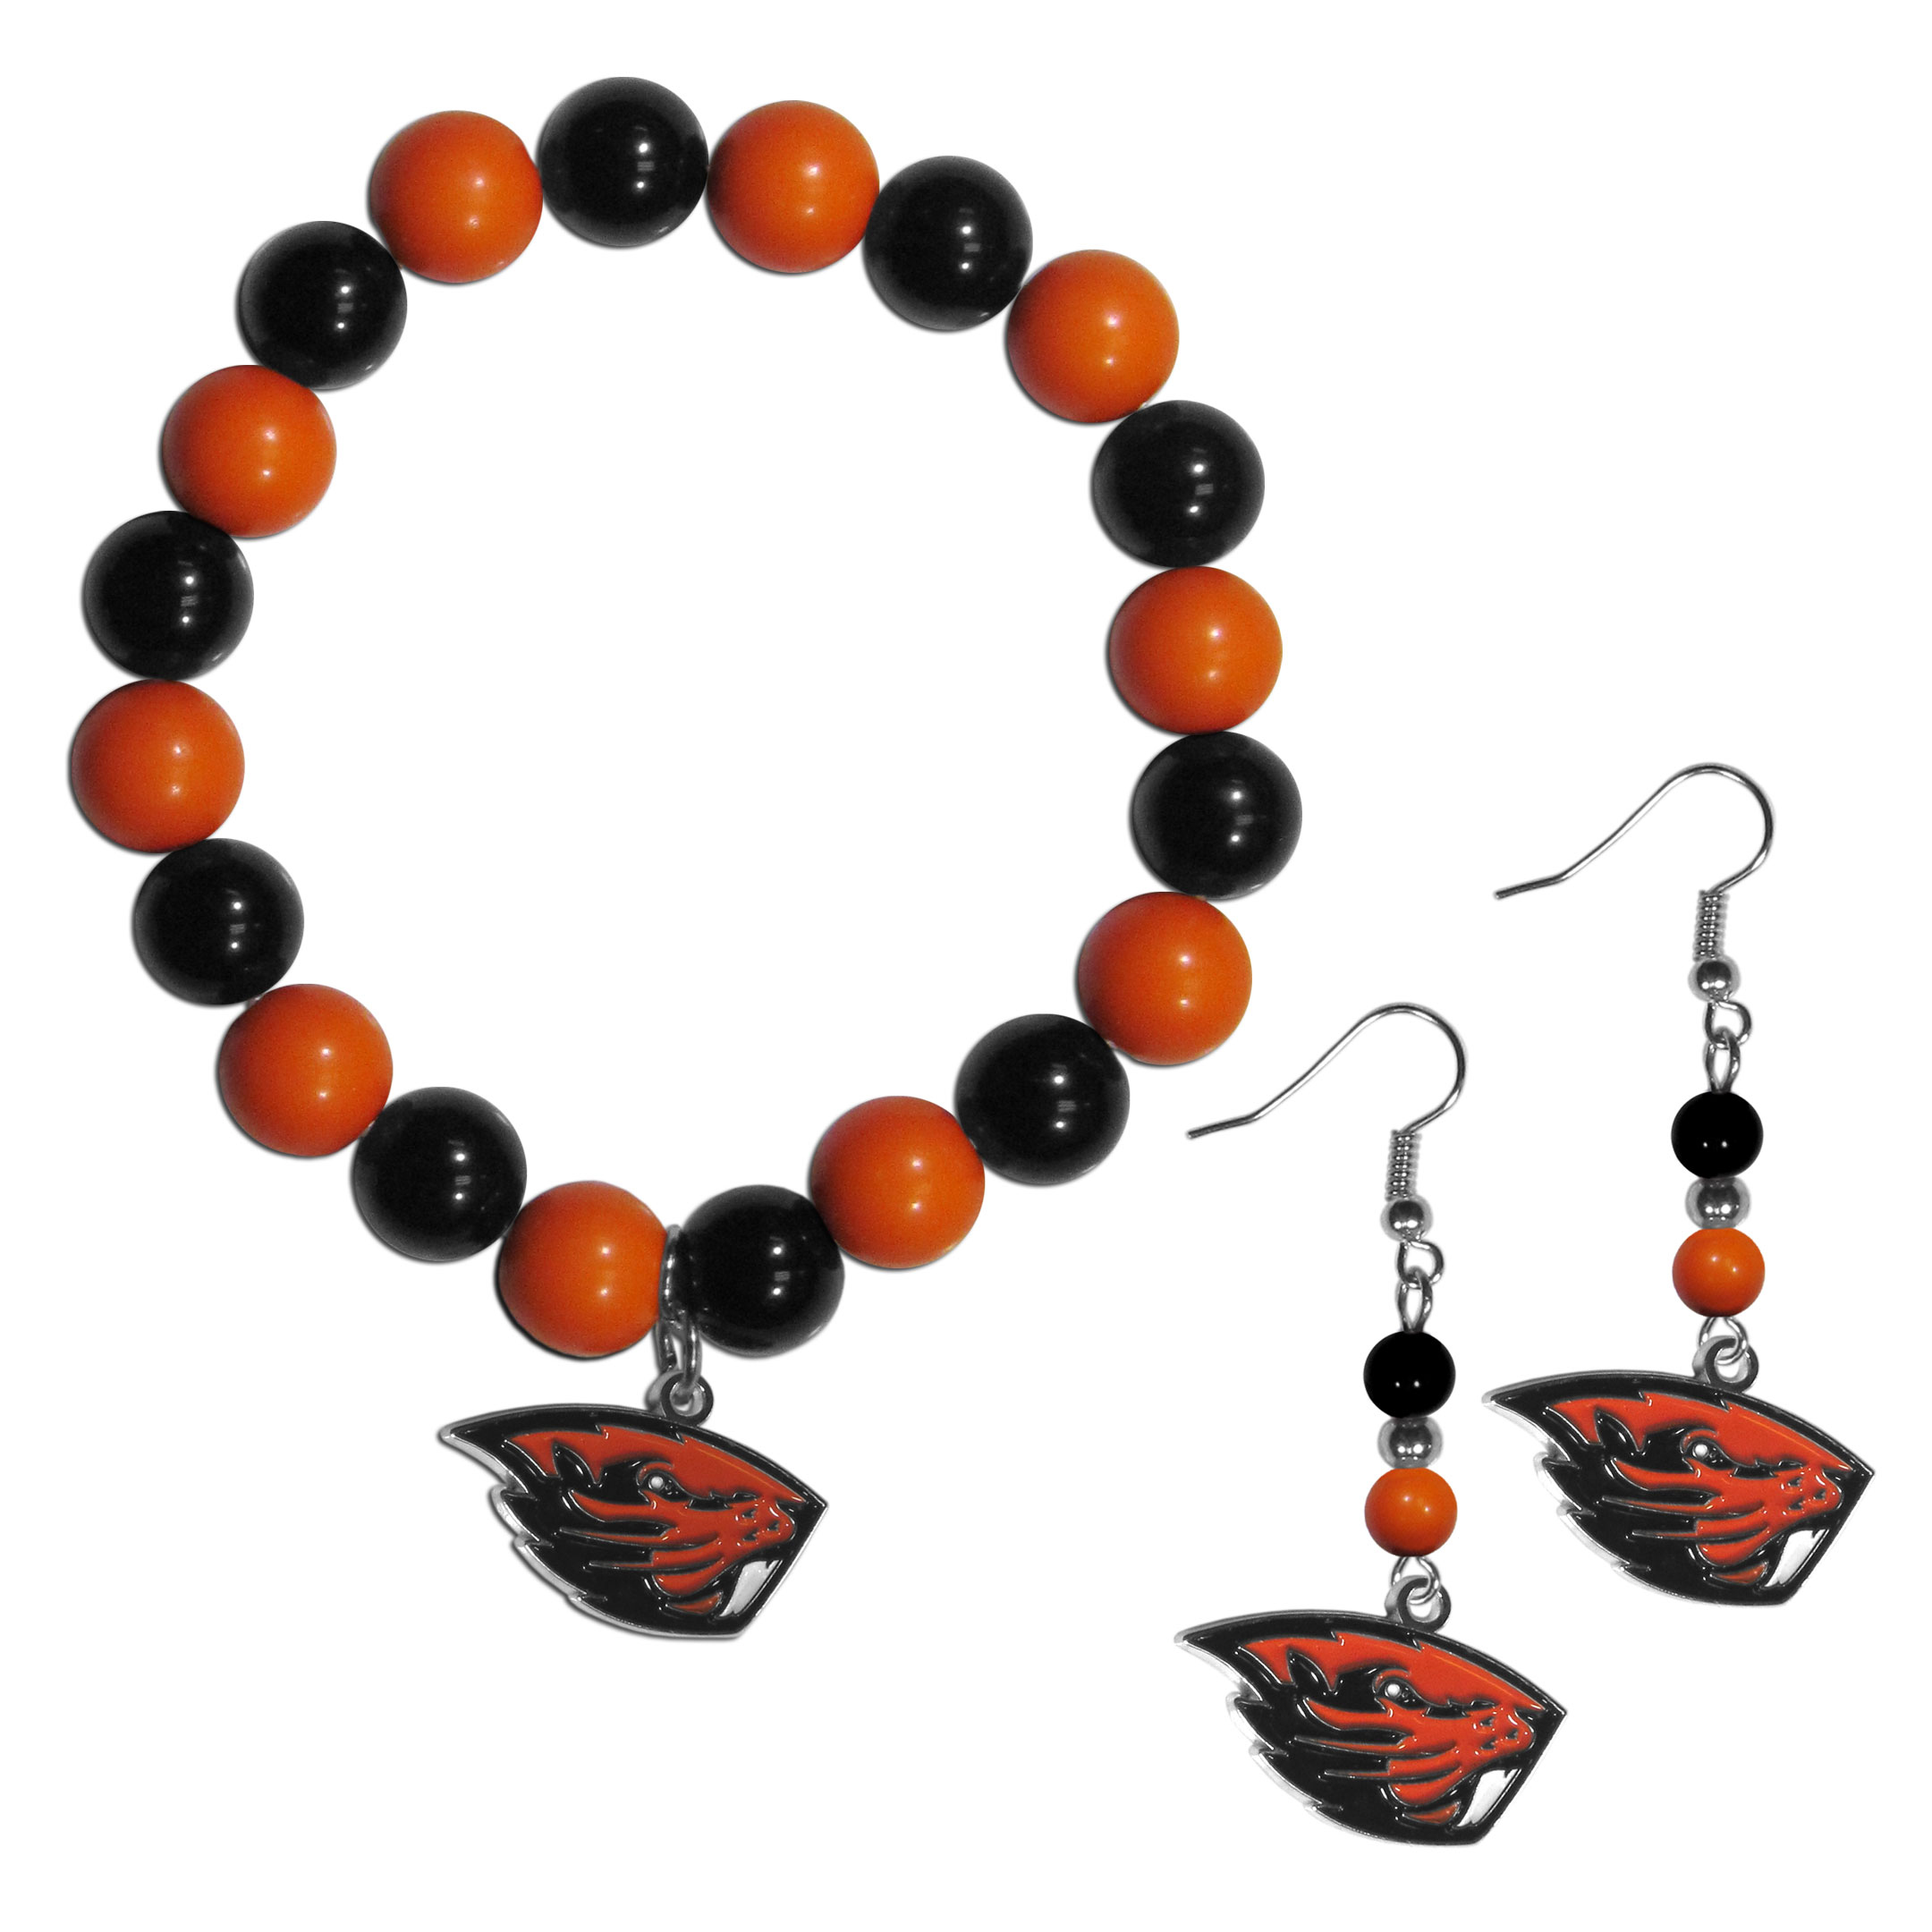 Oregon St. Beavers Fan Bead Earrings and Bracelet Set - This fun and colorful Oregon St. Beavers fan bead jewelry set is fun and casual with eye-catching beads in bright team colors. The fashionable dangle earrings feature a team colored beads that drop down to a carved and enameled charm. The stretch bracelet has larger matching beads that make a striking statement and have a matching team charm. These sassy yet sporty jewelry pieces make a perfect gift for any female fan. Spice up your game-day outfit with these fun colorful earrings and bracelet that are also cute enough for any day.